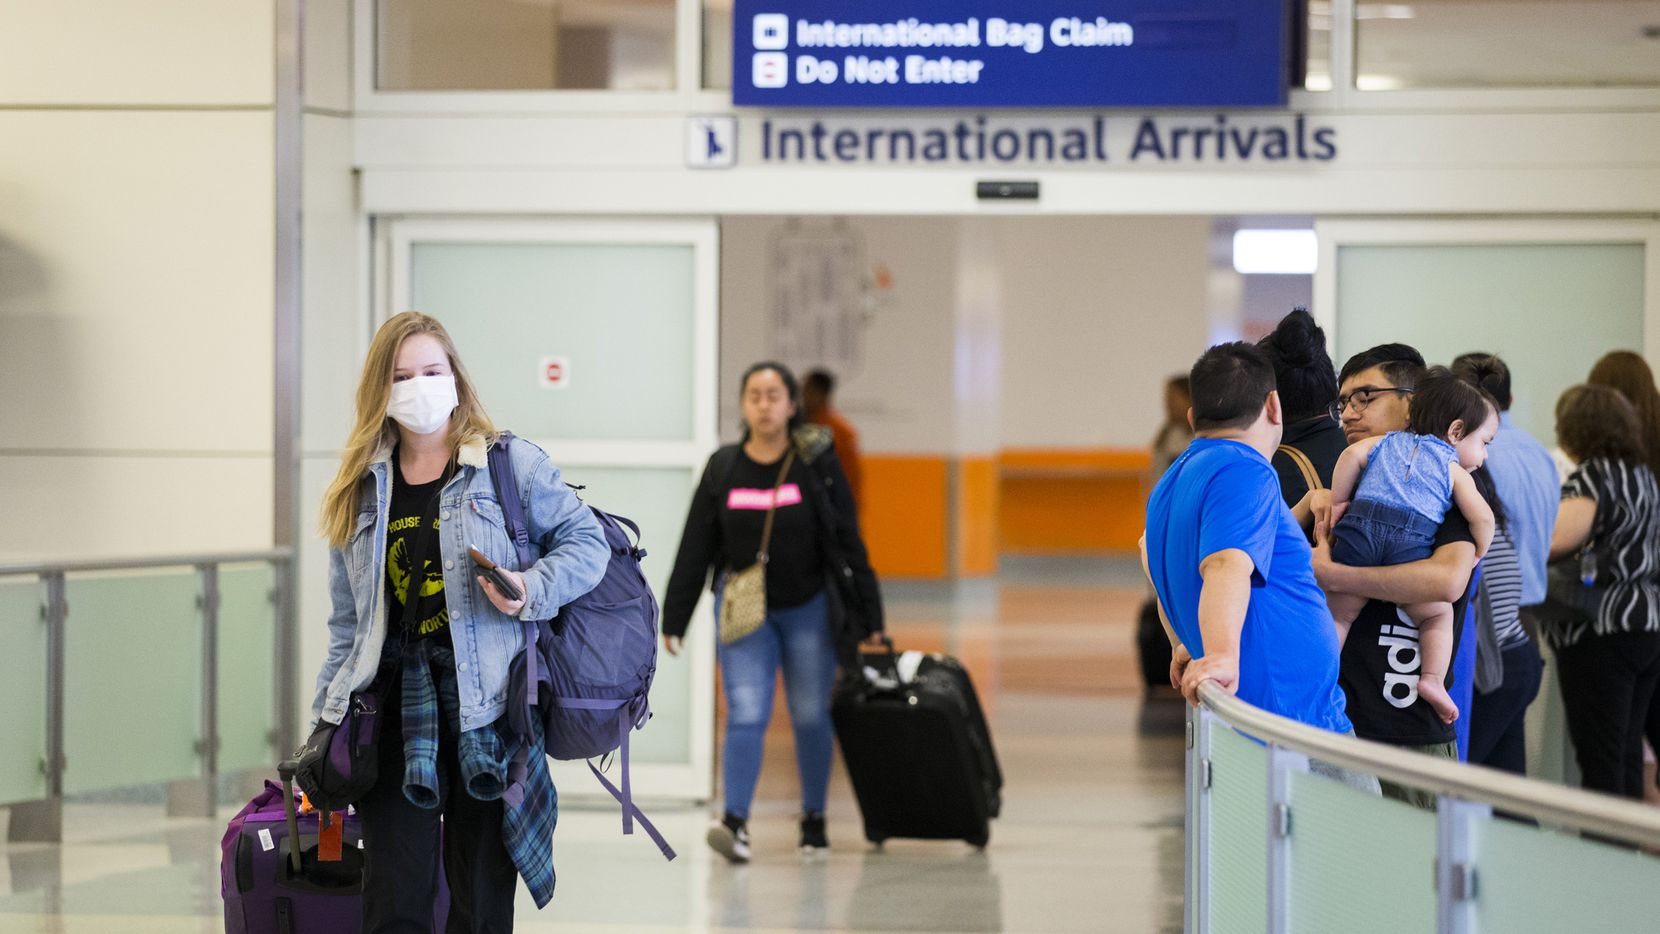 International travelers arrived at Terminal D at DFW International Airport on March 12, 2020. Travel from Europe has been restricted due to the spread of coronavirus.